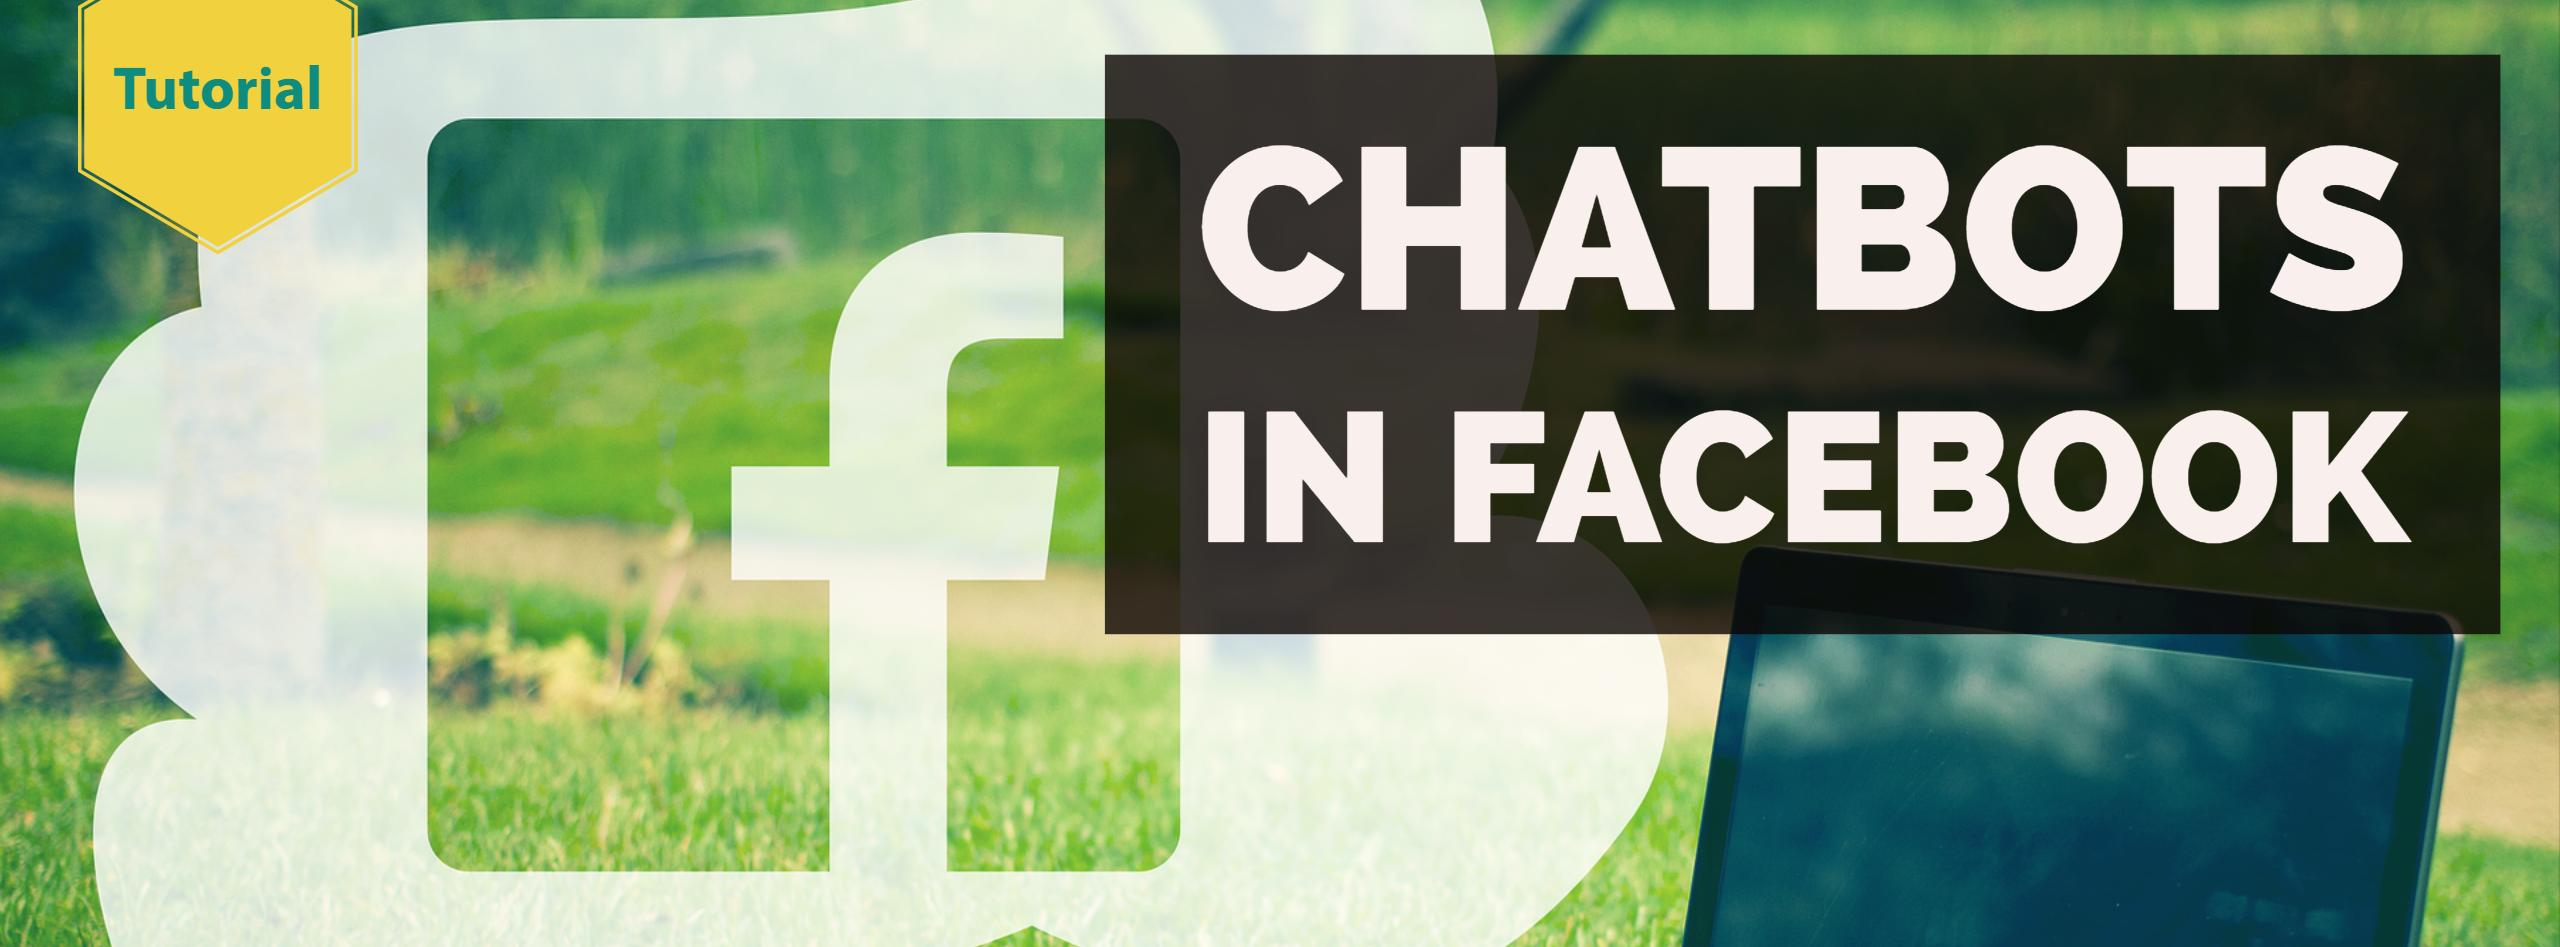 Tutorial: How to setup a simple chatbot for Facebook